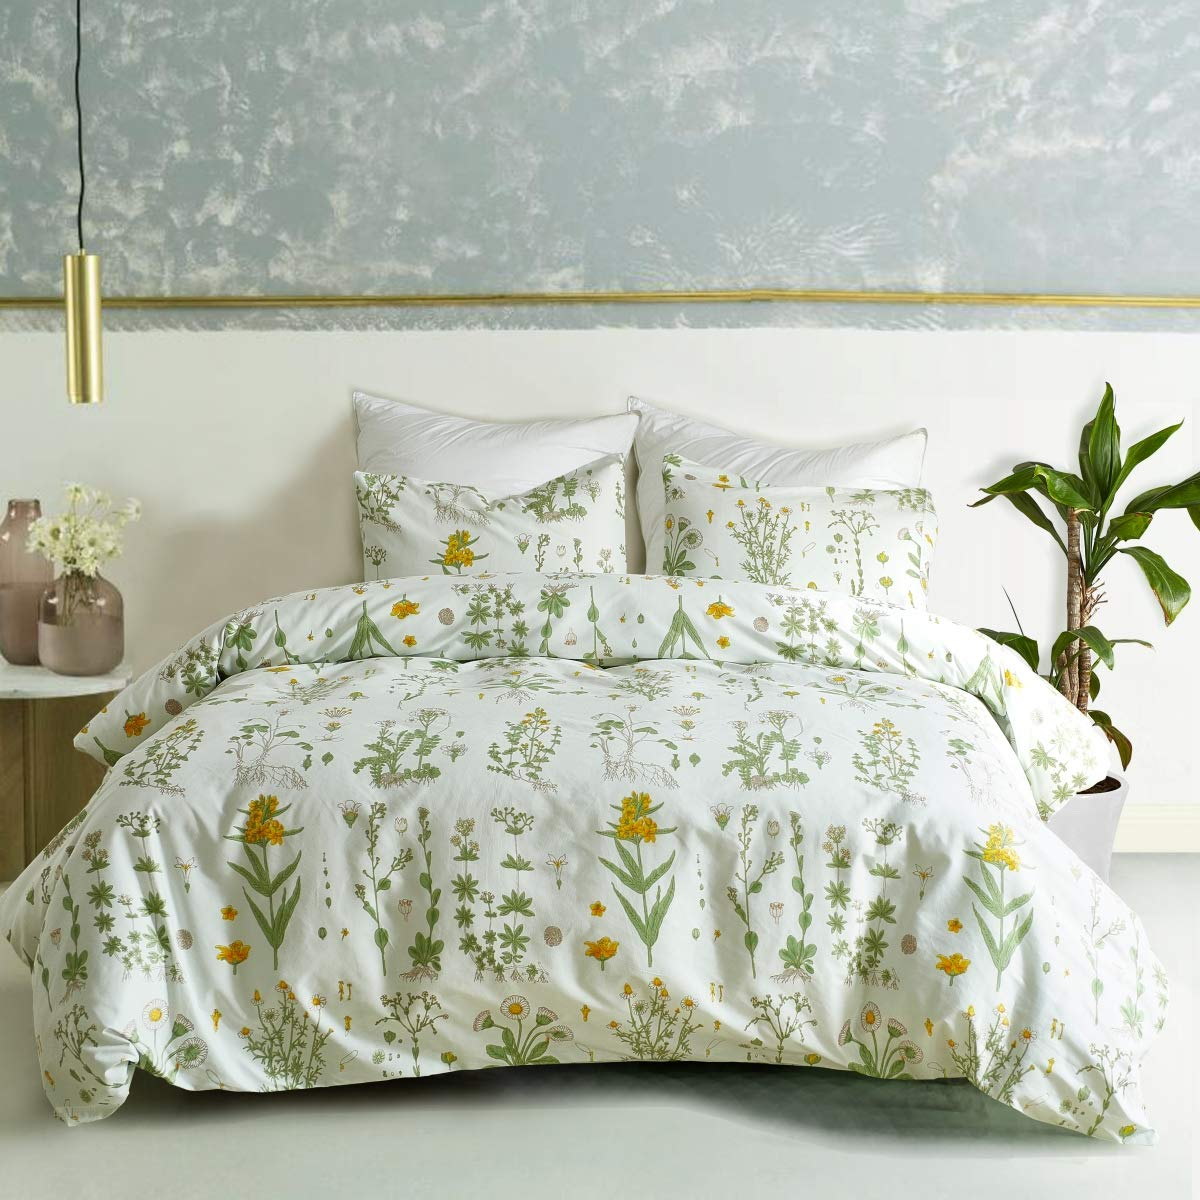 3 PCs Botanical Duvet Cover Set, Modern Flowers Printed Boho Comforter Cover Bedding Sets with Zipper Ties by Smoofy (Image #3)